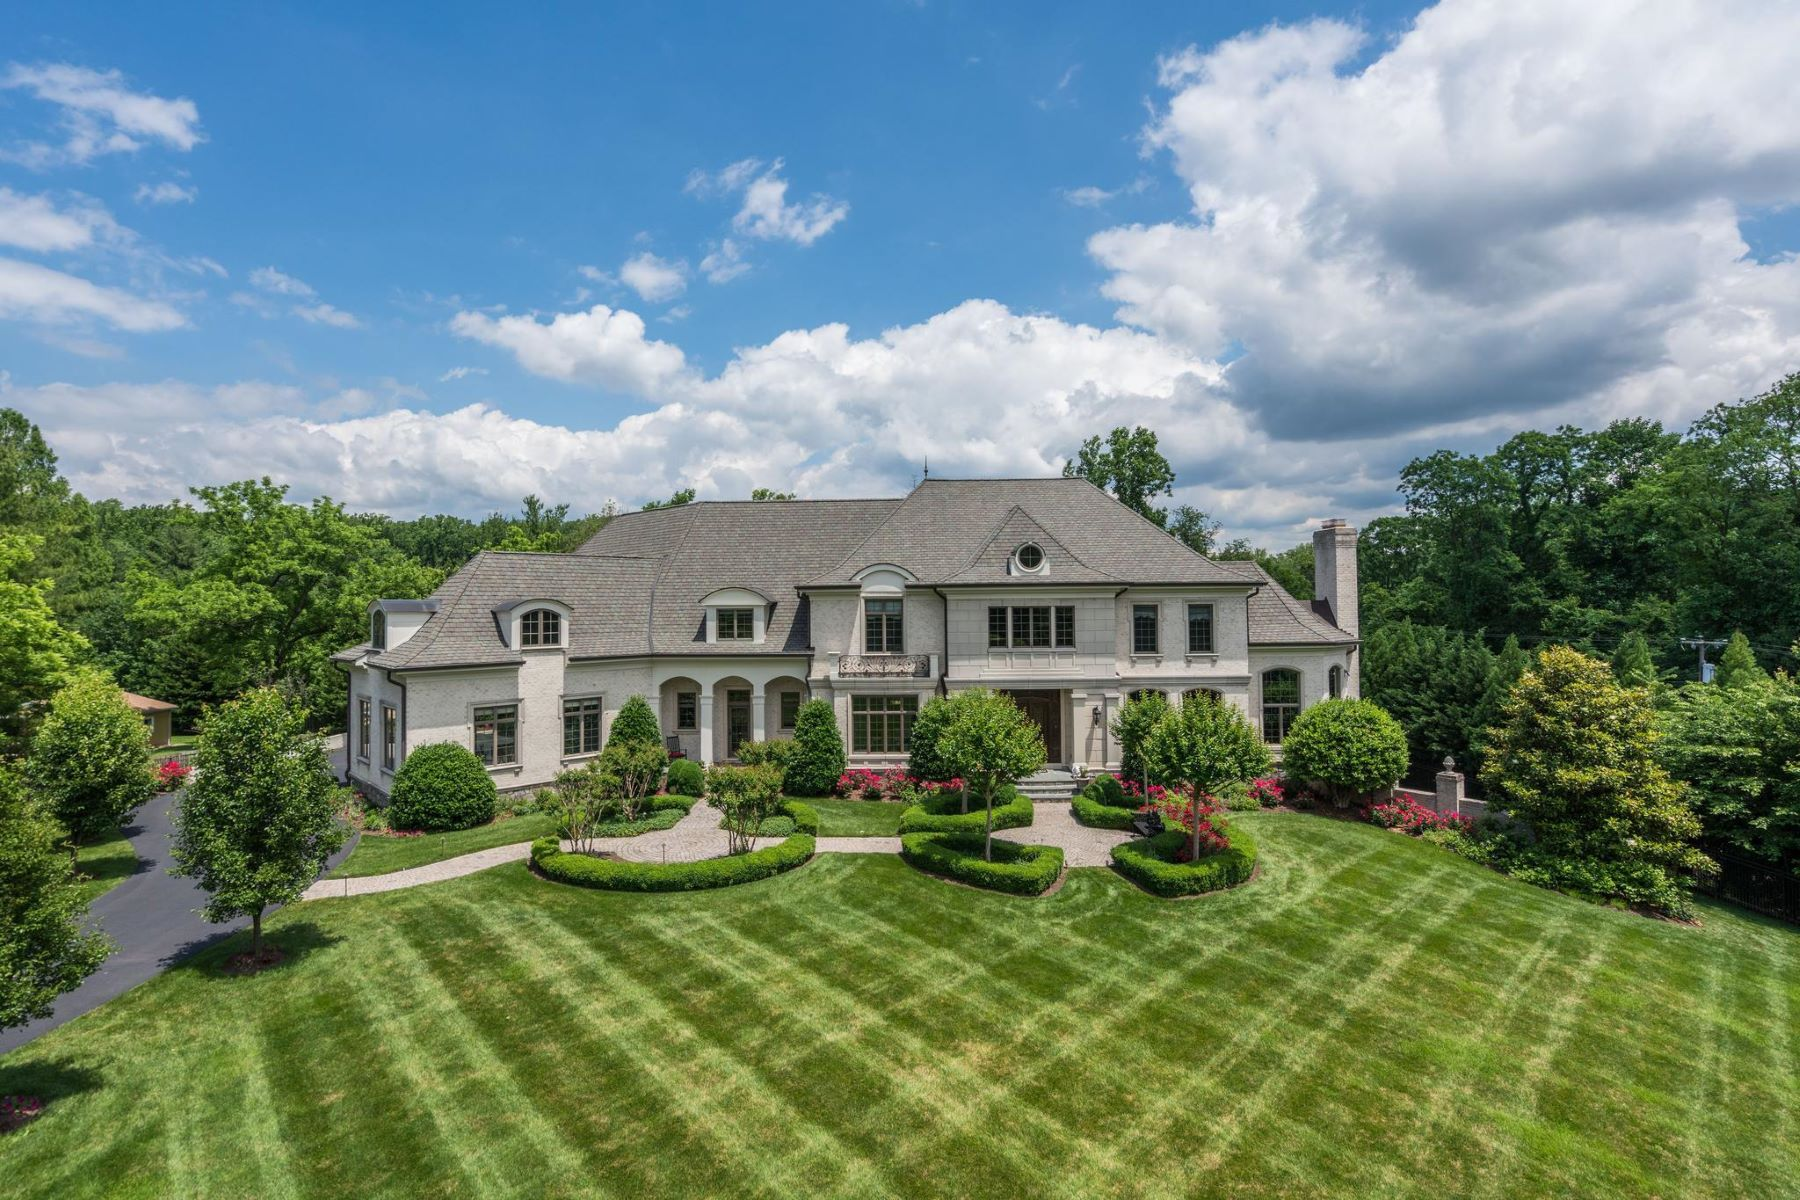 Single Family Home for Sale at 8334 Alvord St 8334 Alvord St McLean, Virginia 22102 United States